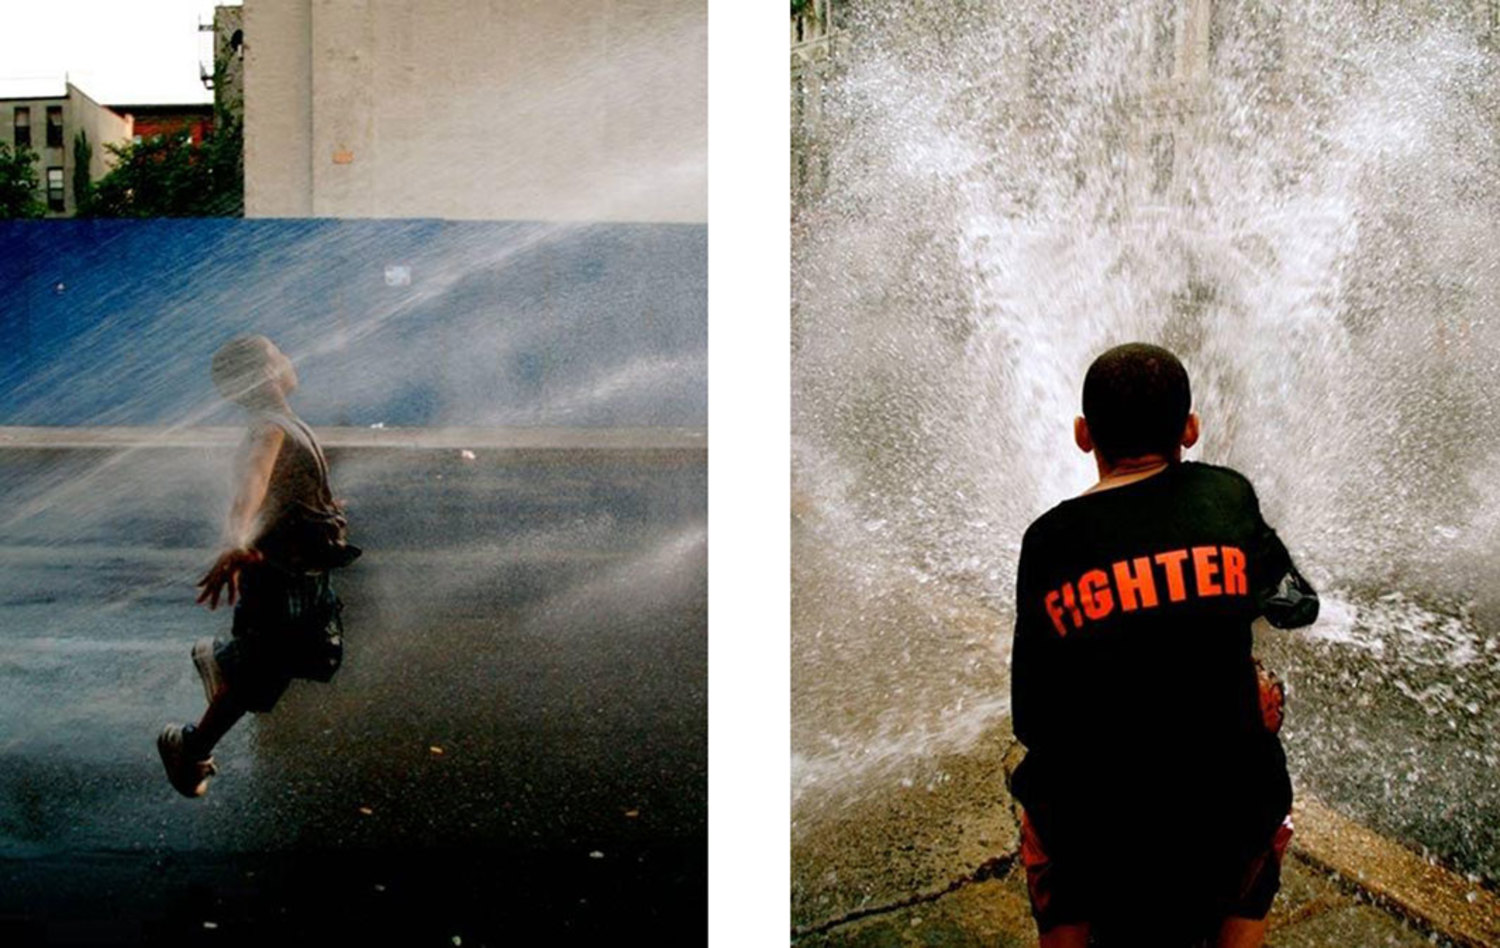 Left: Exuberance, Harlem, 2007. Right: The Fighter, Harlem, 2007.